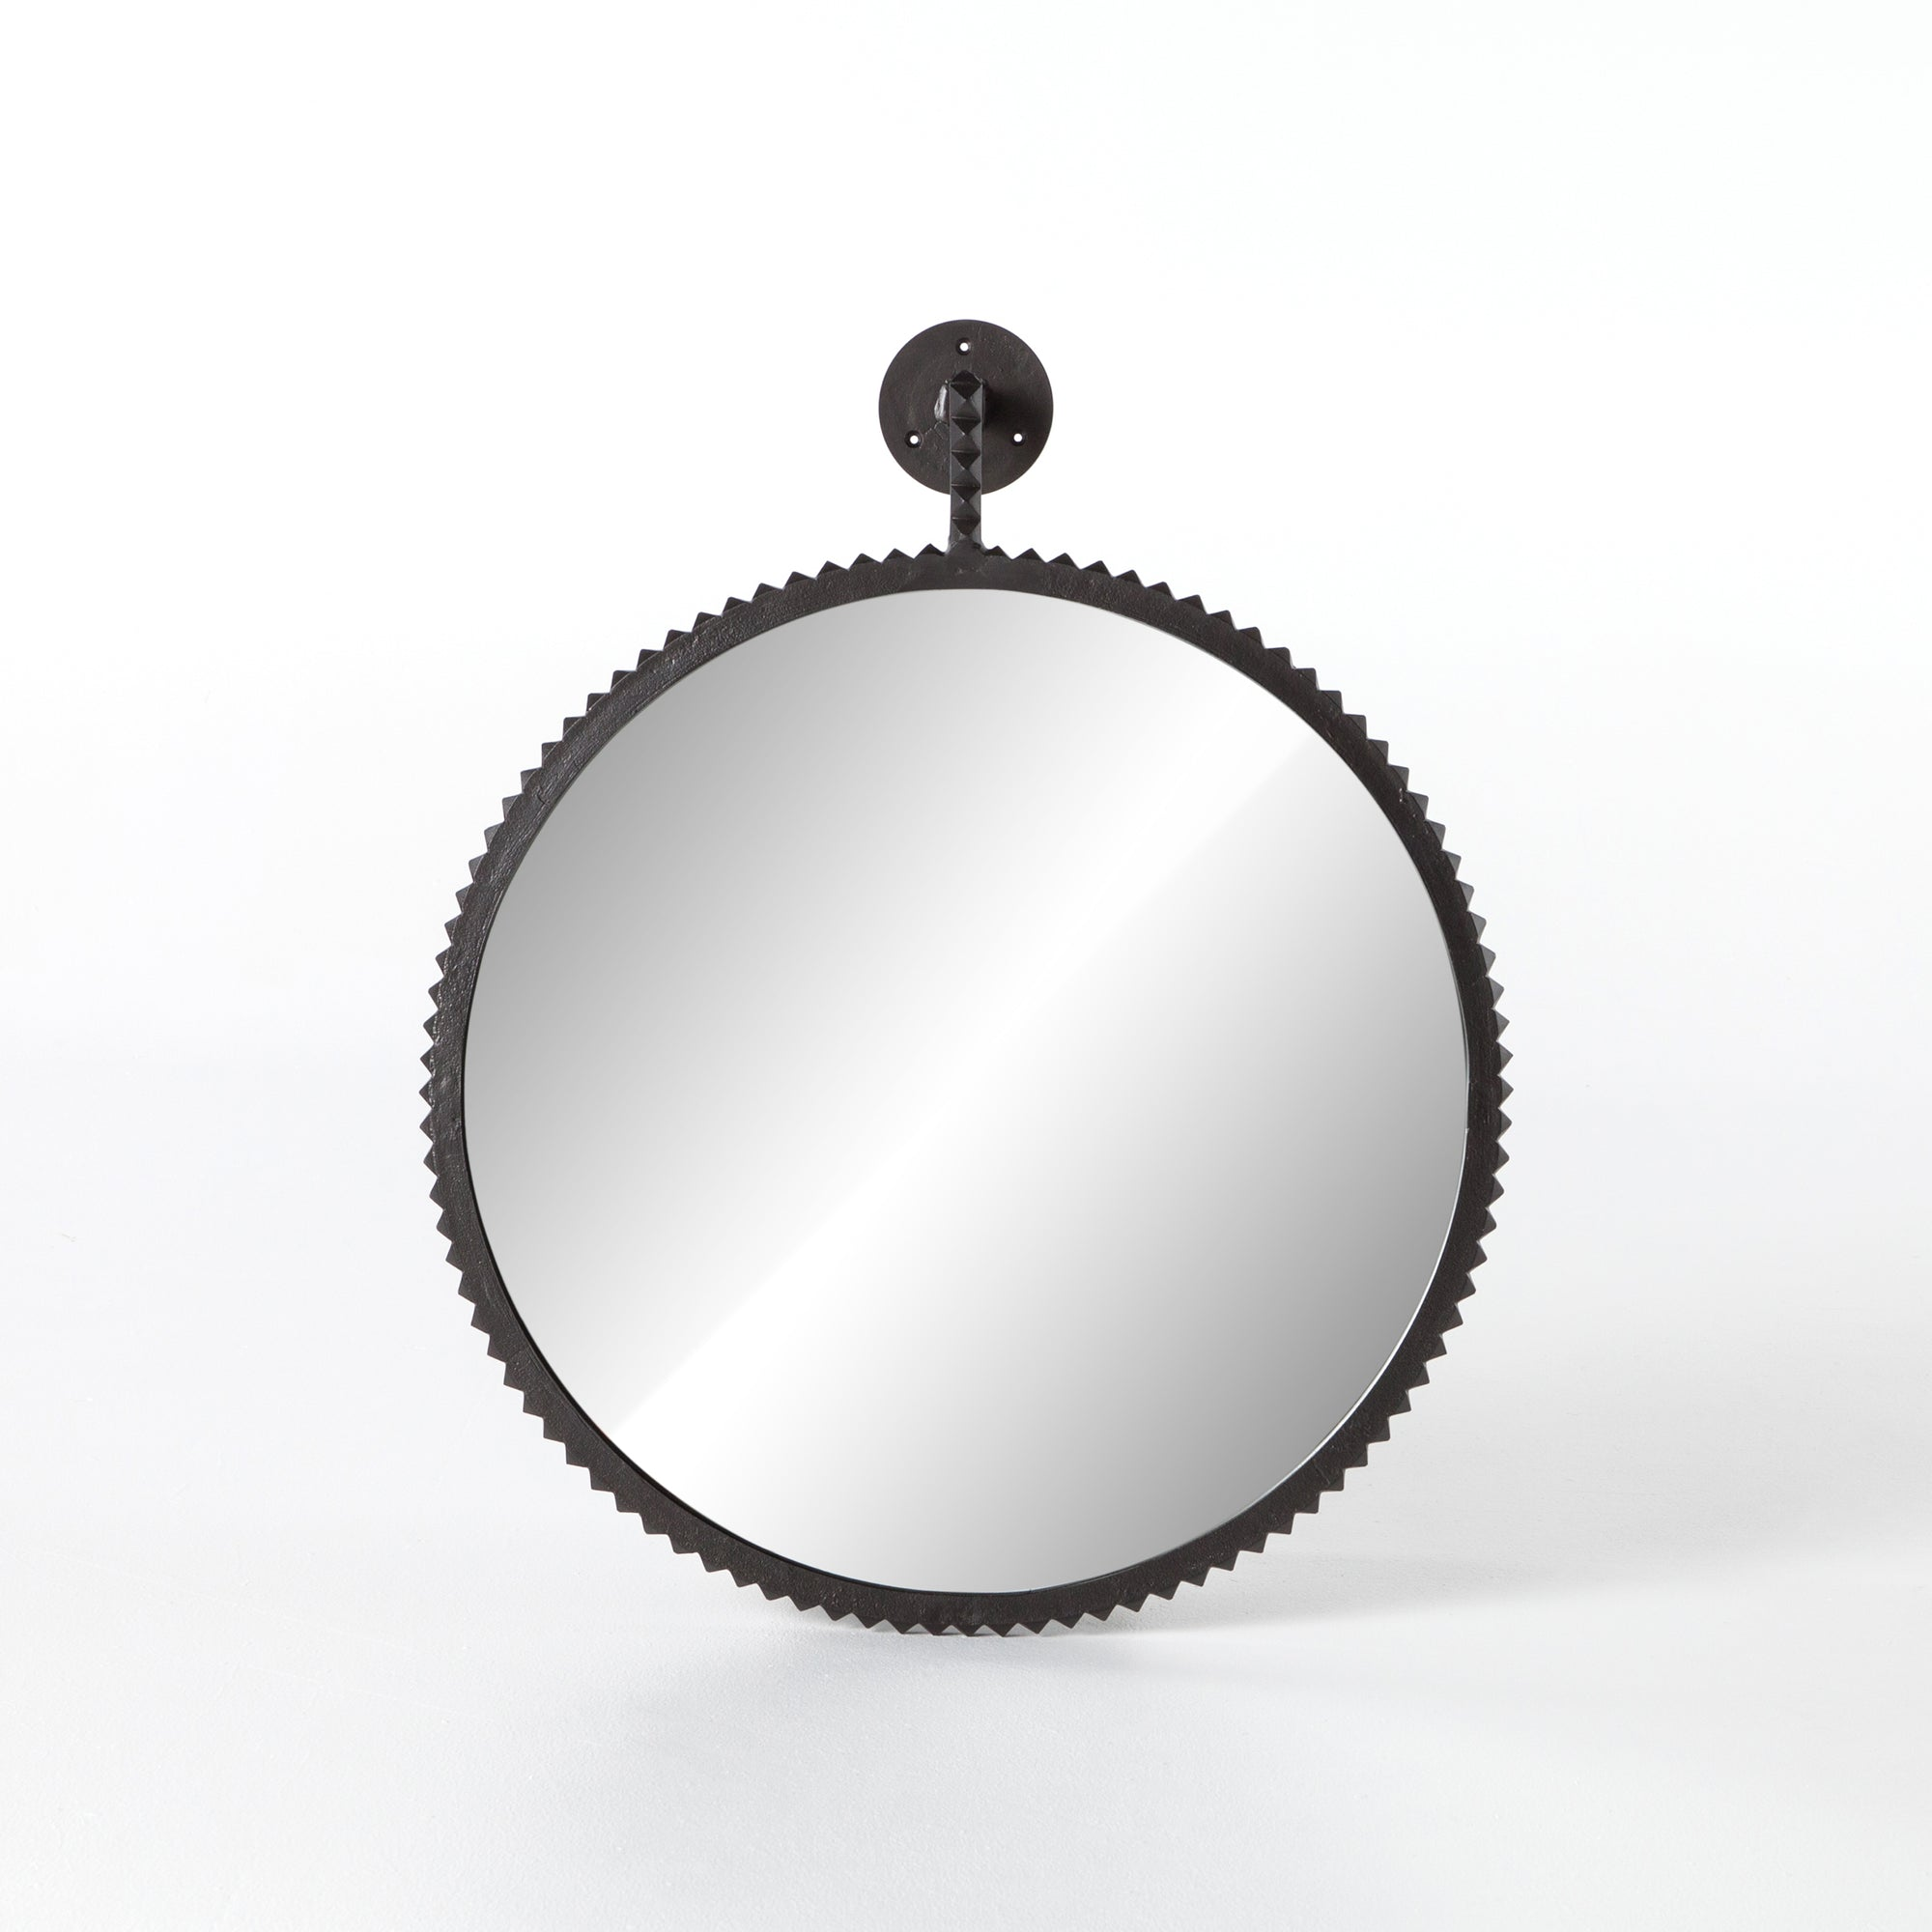 Cru Large Mirror - Bronze